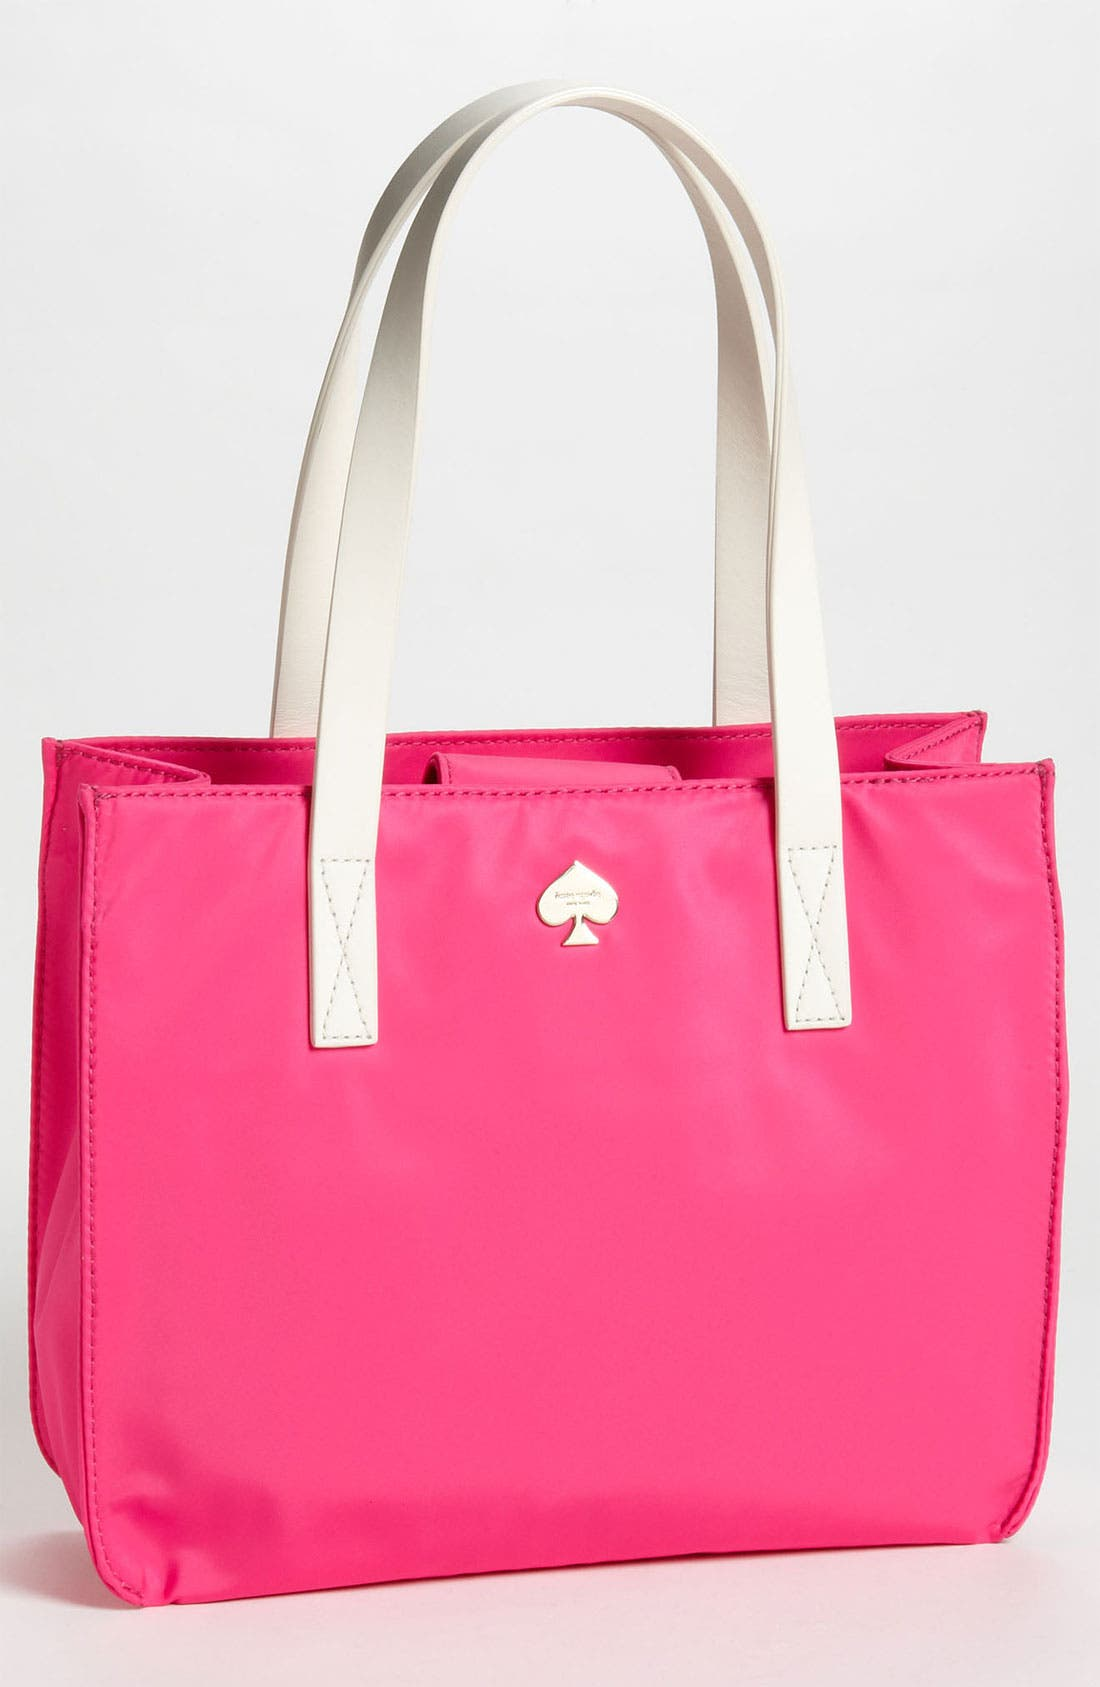 Main Image - kate spade new york 'berry street - elise' tote